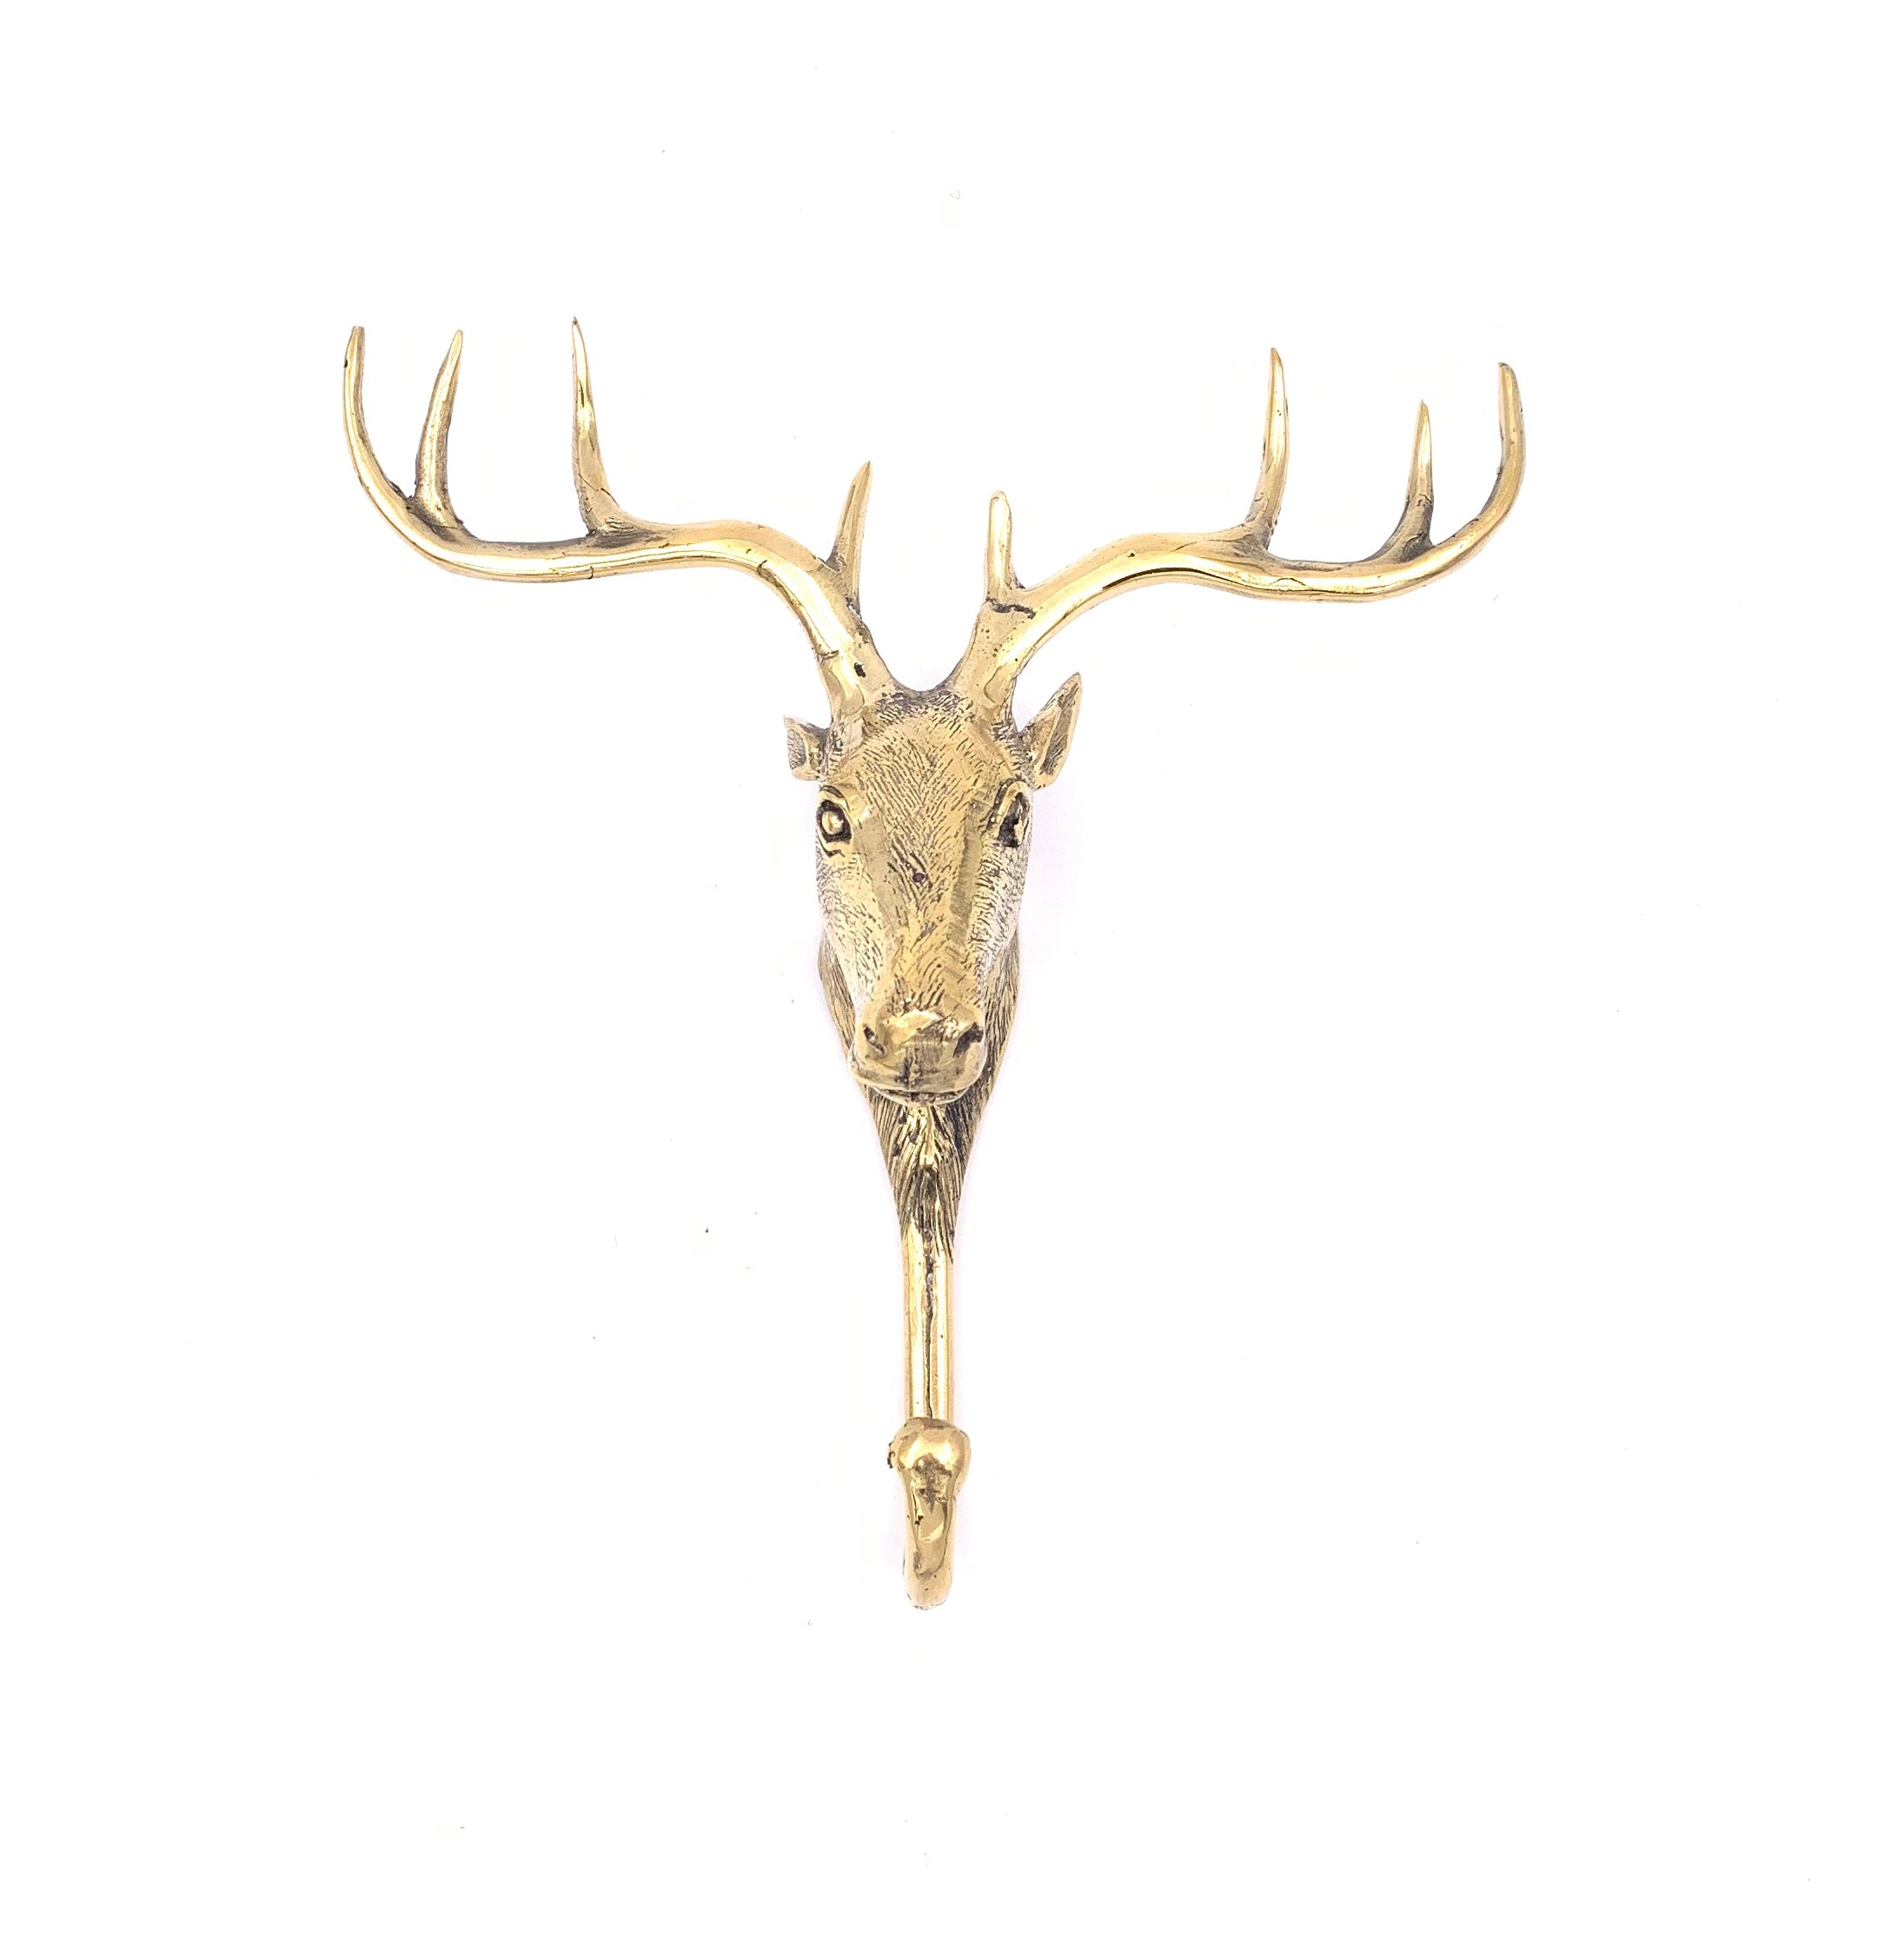 Brass Deer Hook (Hanger)